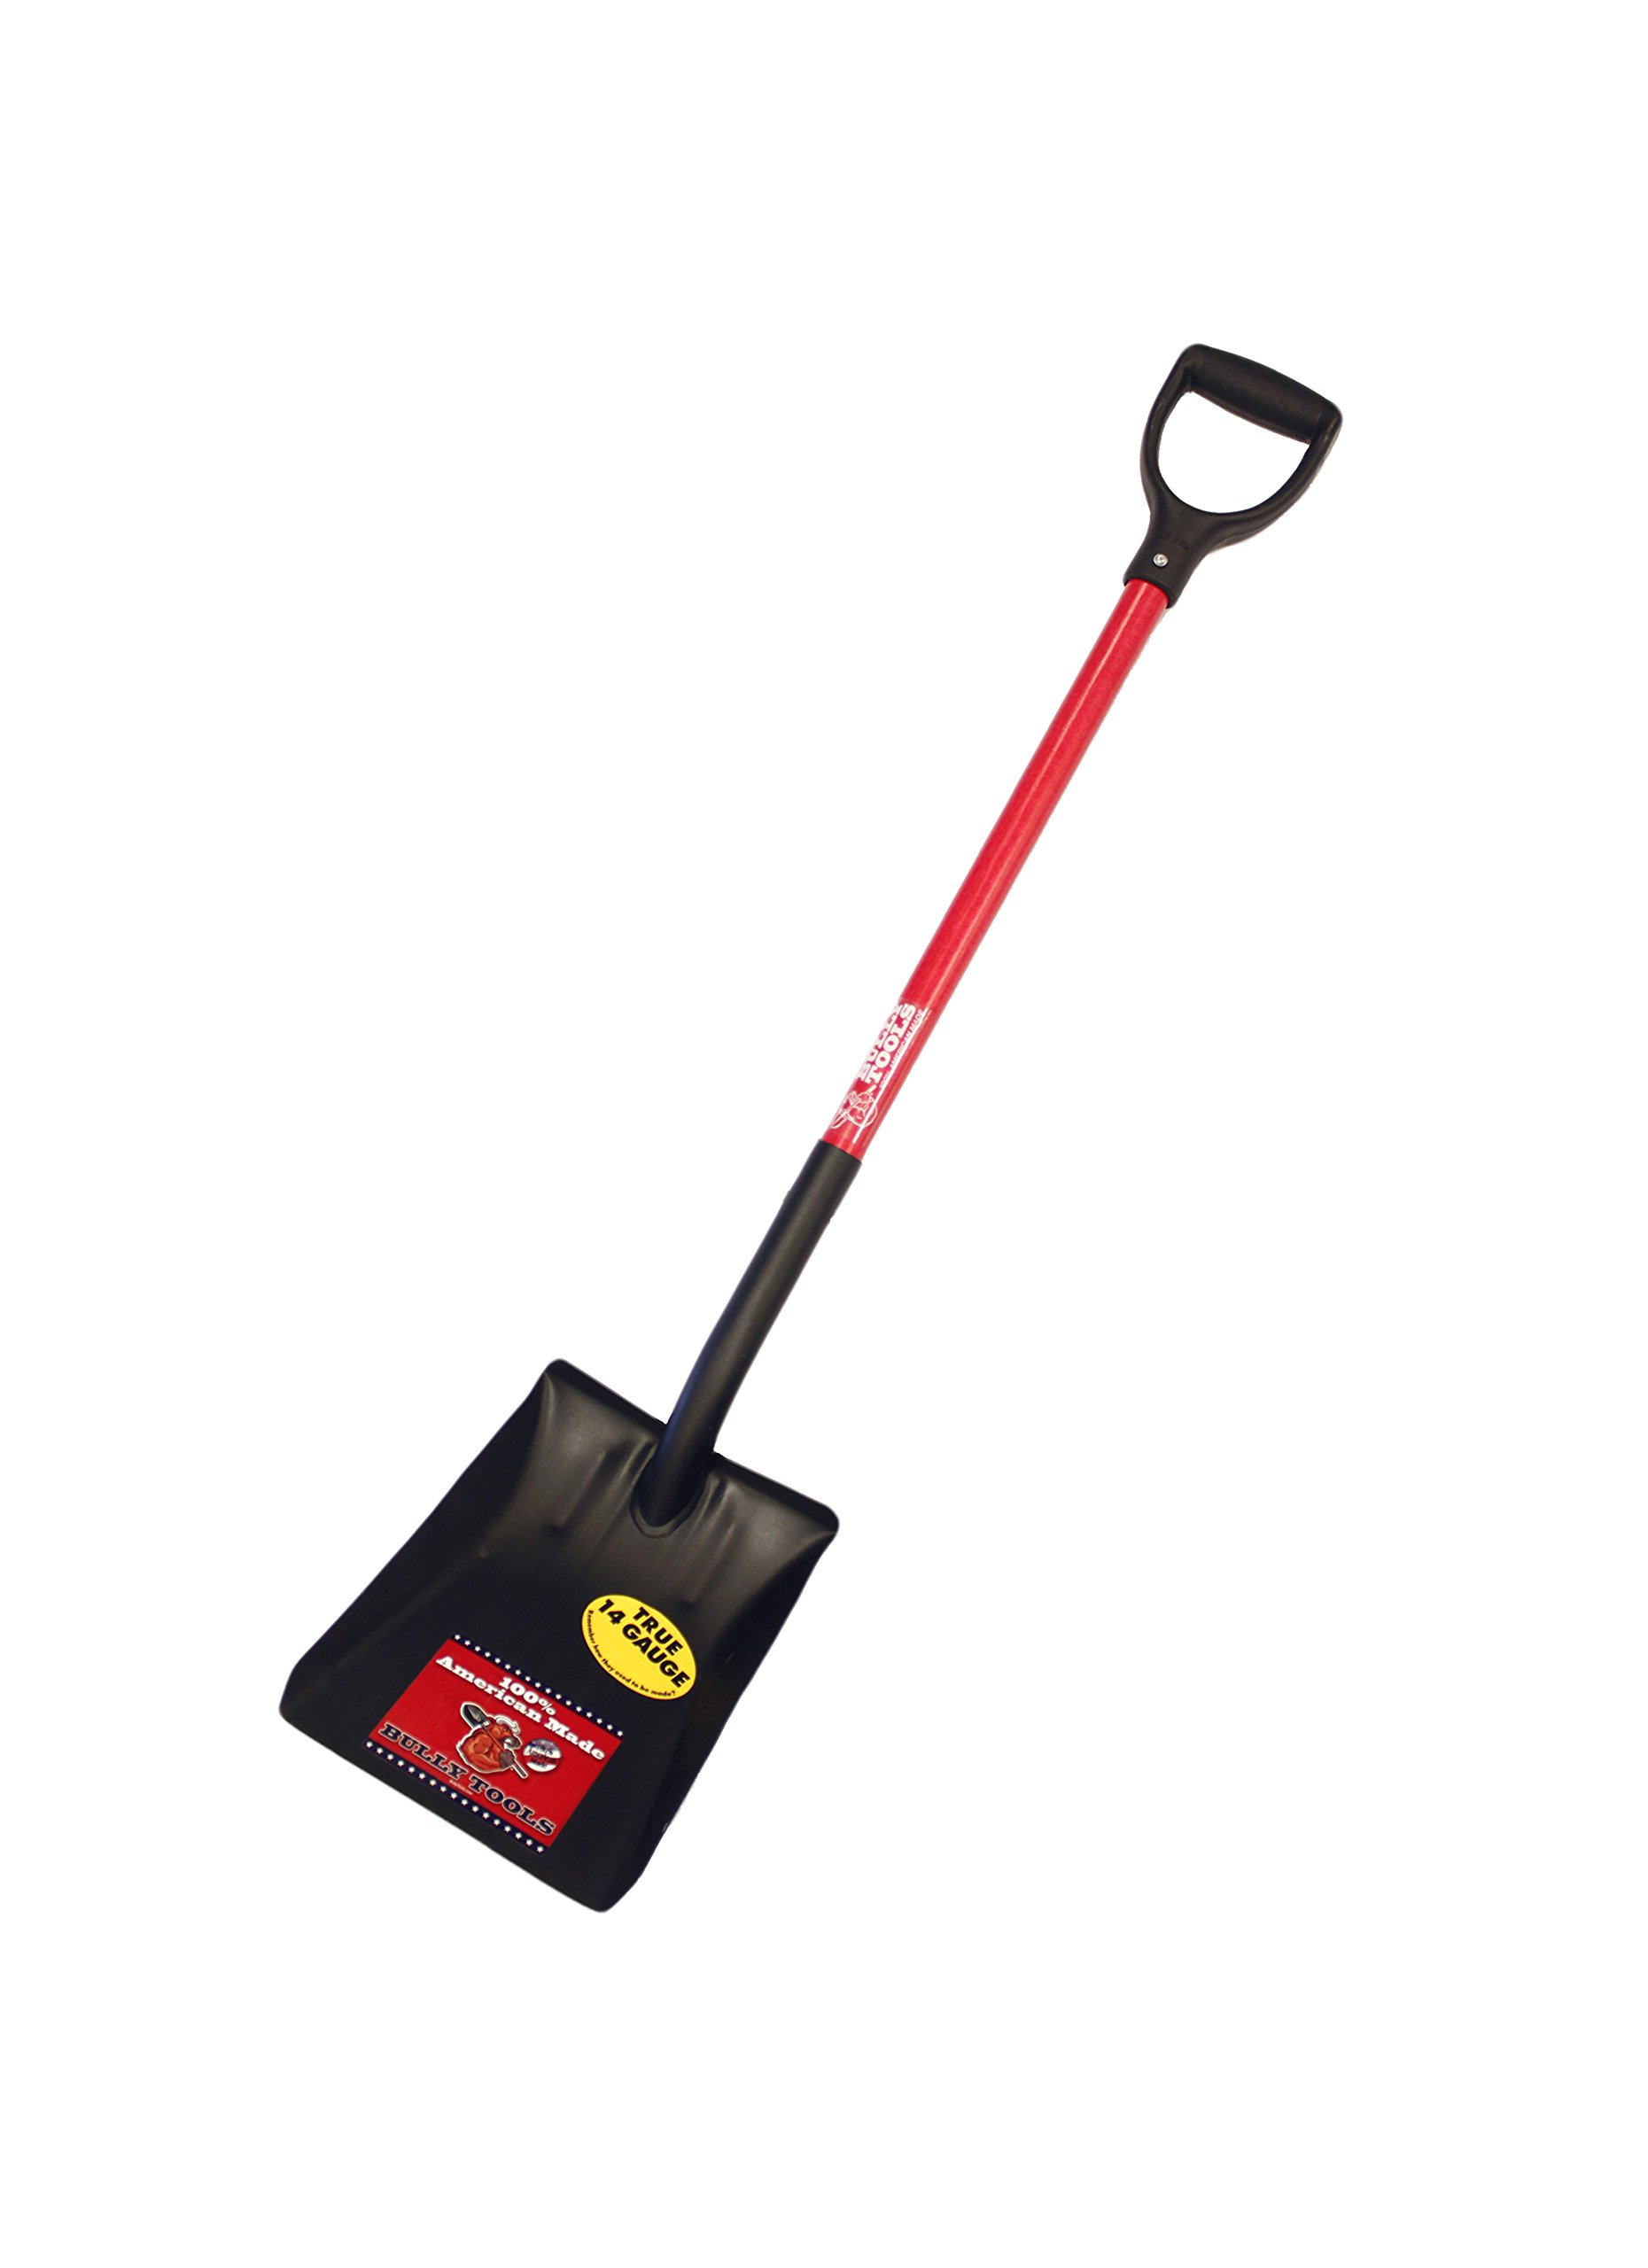 Bully Tools 82520 14-Gauge Square Point Shovel with Fiberglass D-Grip Handle